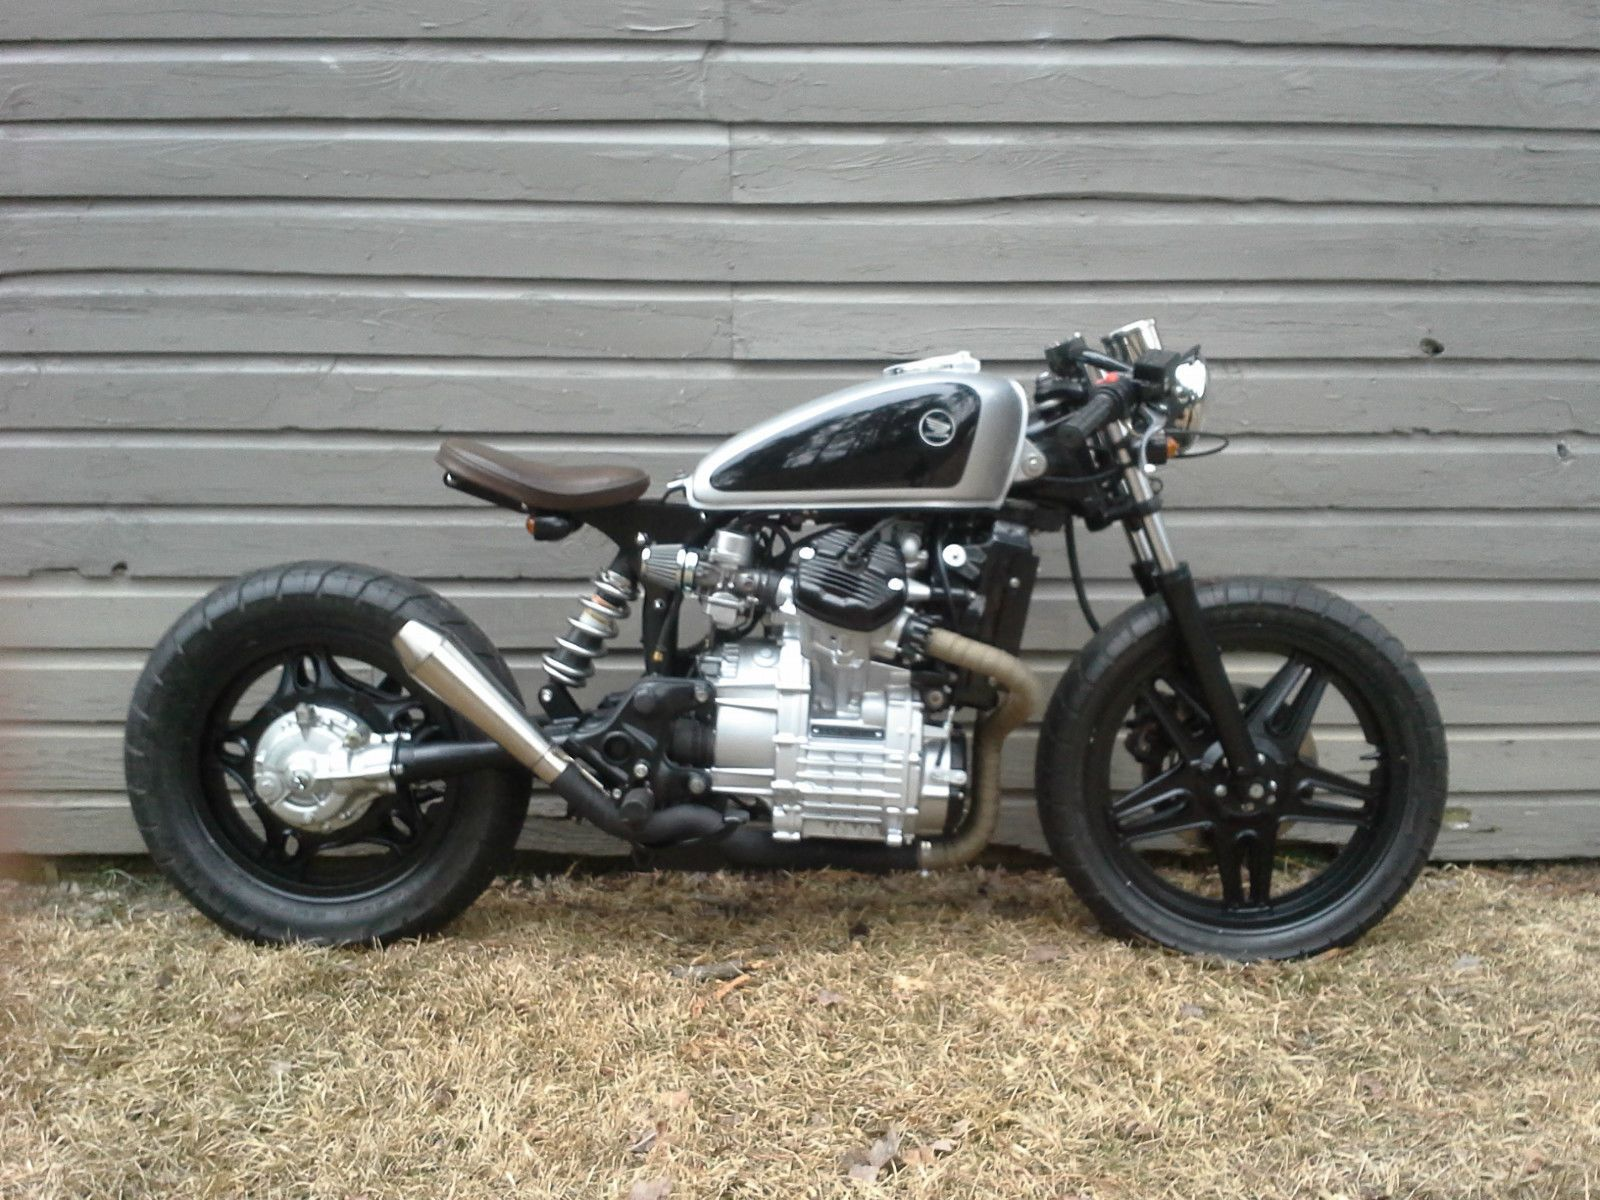 Cx500 cafe racer bobber kit cx500 cafe racer bobbers and cafes how to build a cafe racer frame solutioingenieria Images